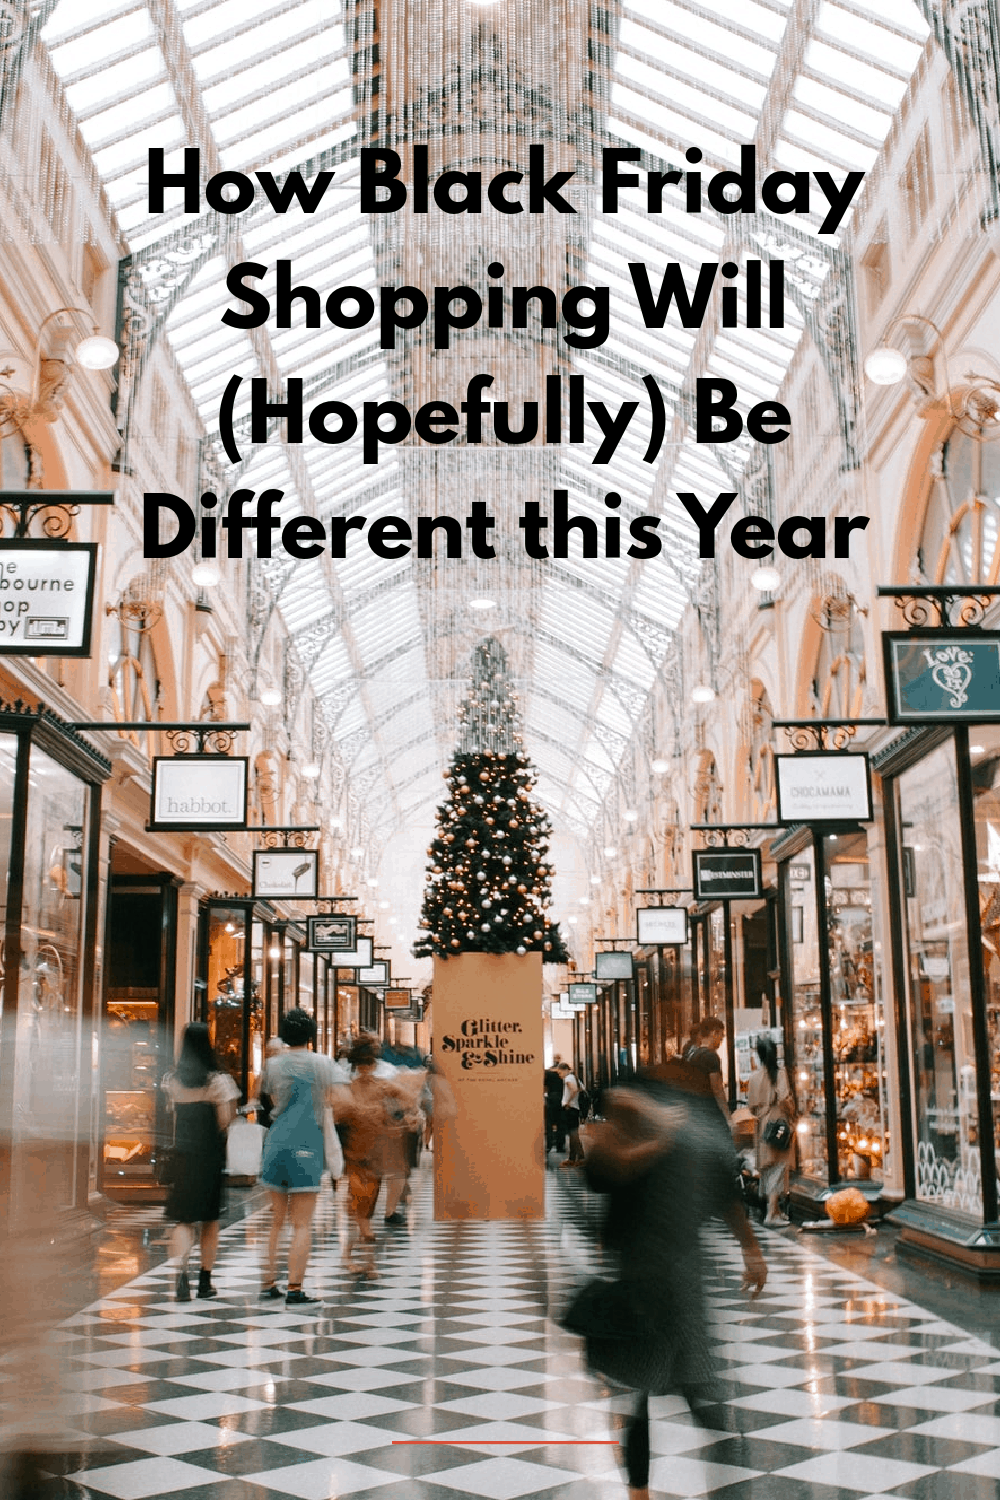 How Black Friday Shopping Will (Hopefully) Be Different this Year